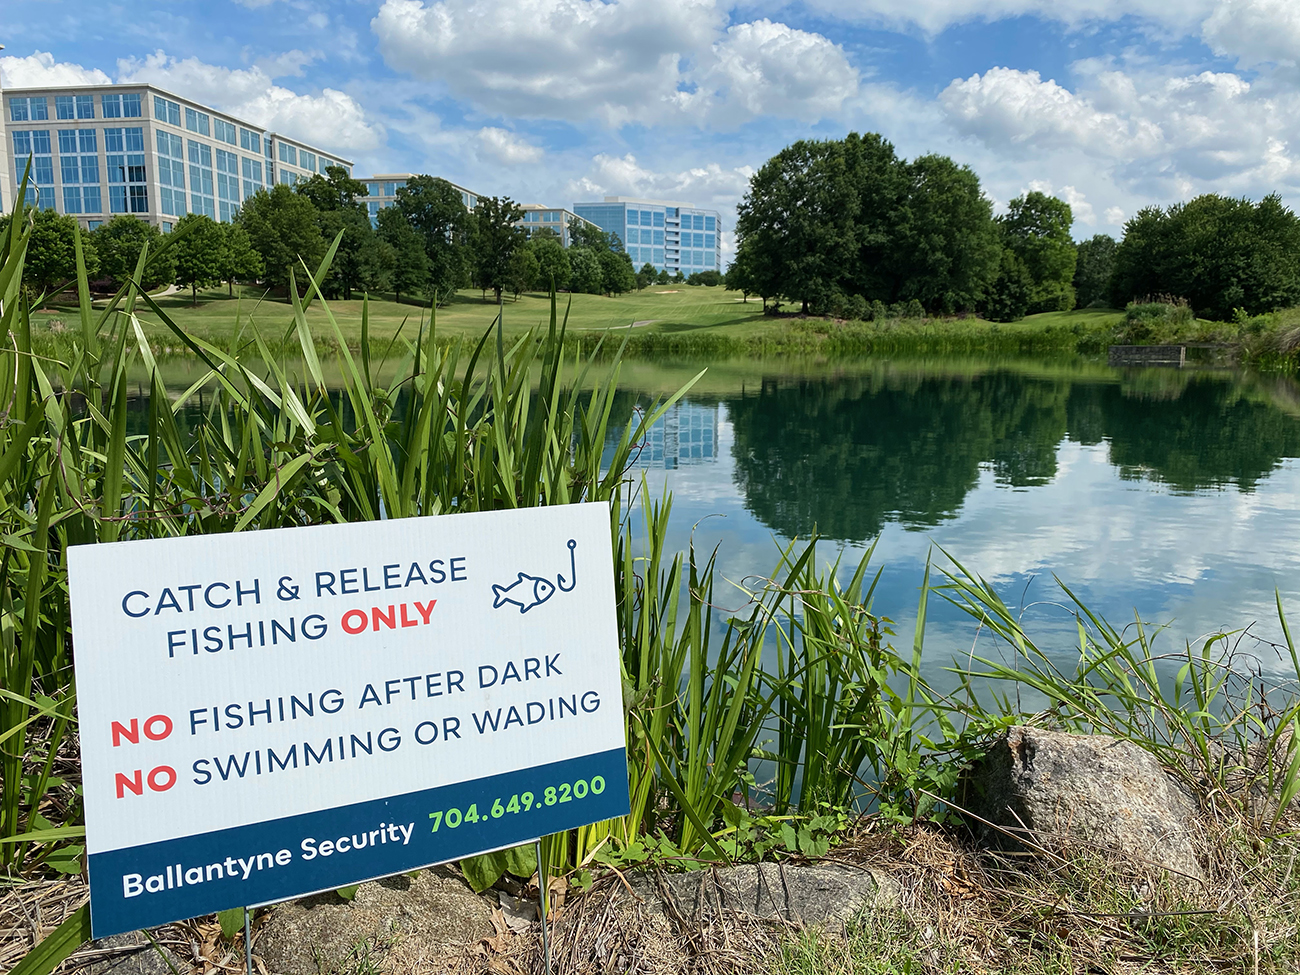 Ballantyne opens 100-acre community park on an old golf course